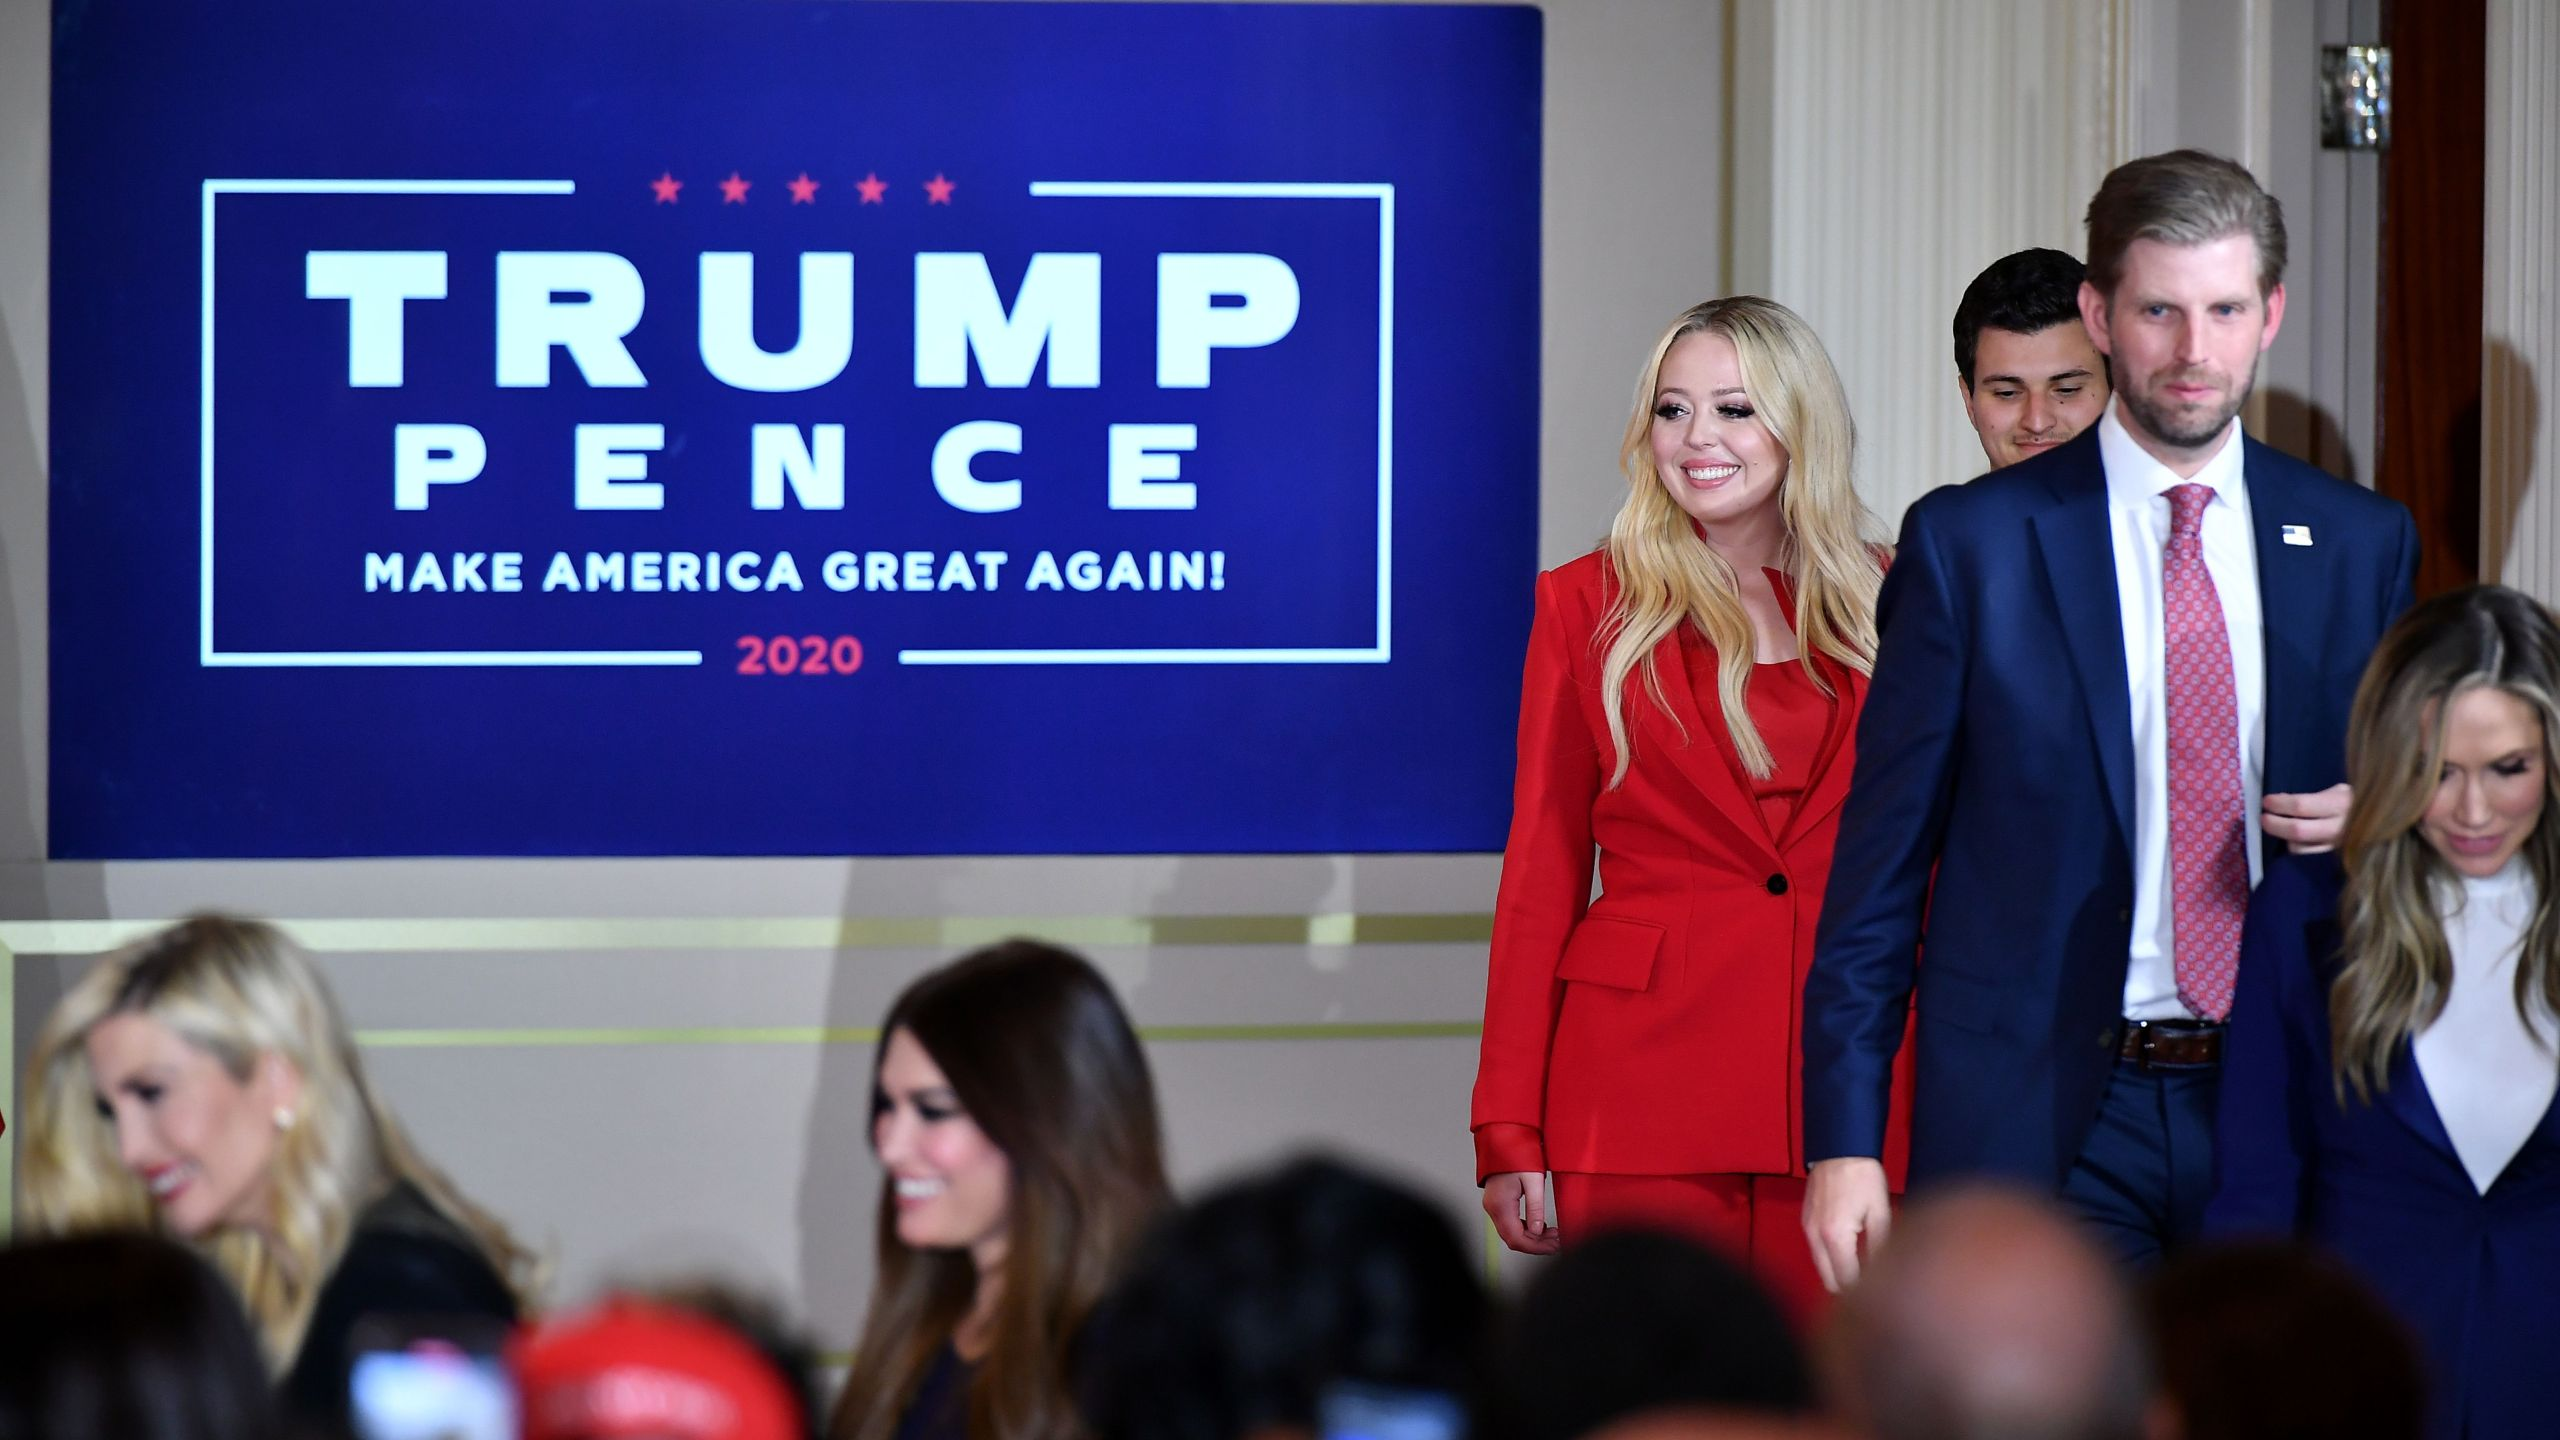 Daughter of the US President Tiffany Trump (L), her boyfriend Michael Boulos, Eric Trump, son of the president, and his wife Lara Trump arrive to hear the president speak during election night in the East Room of the White House in Washington, DC, early on Nov. 4, 2020. (MANDEL NGAN / AFP via Getty Images)